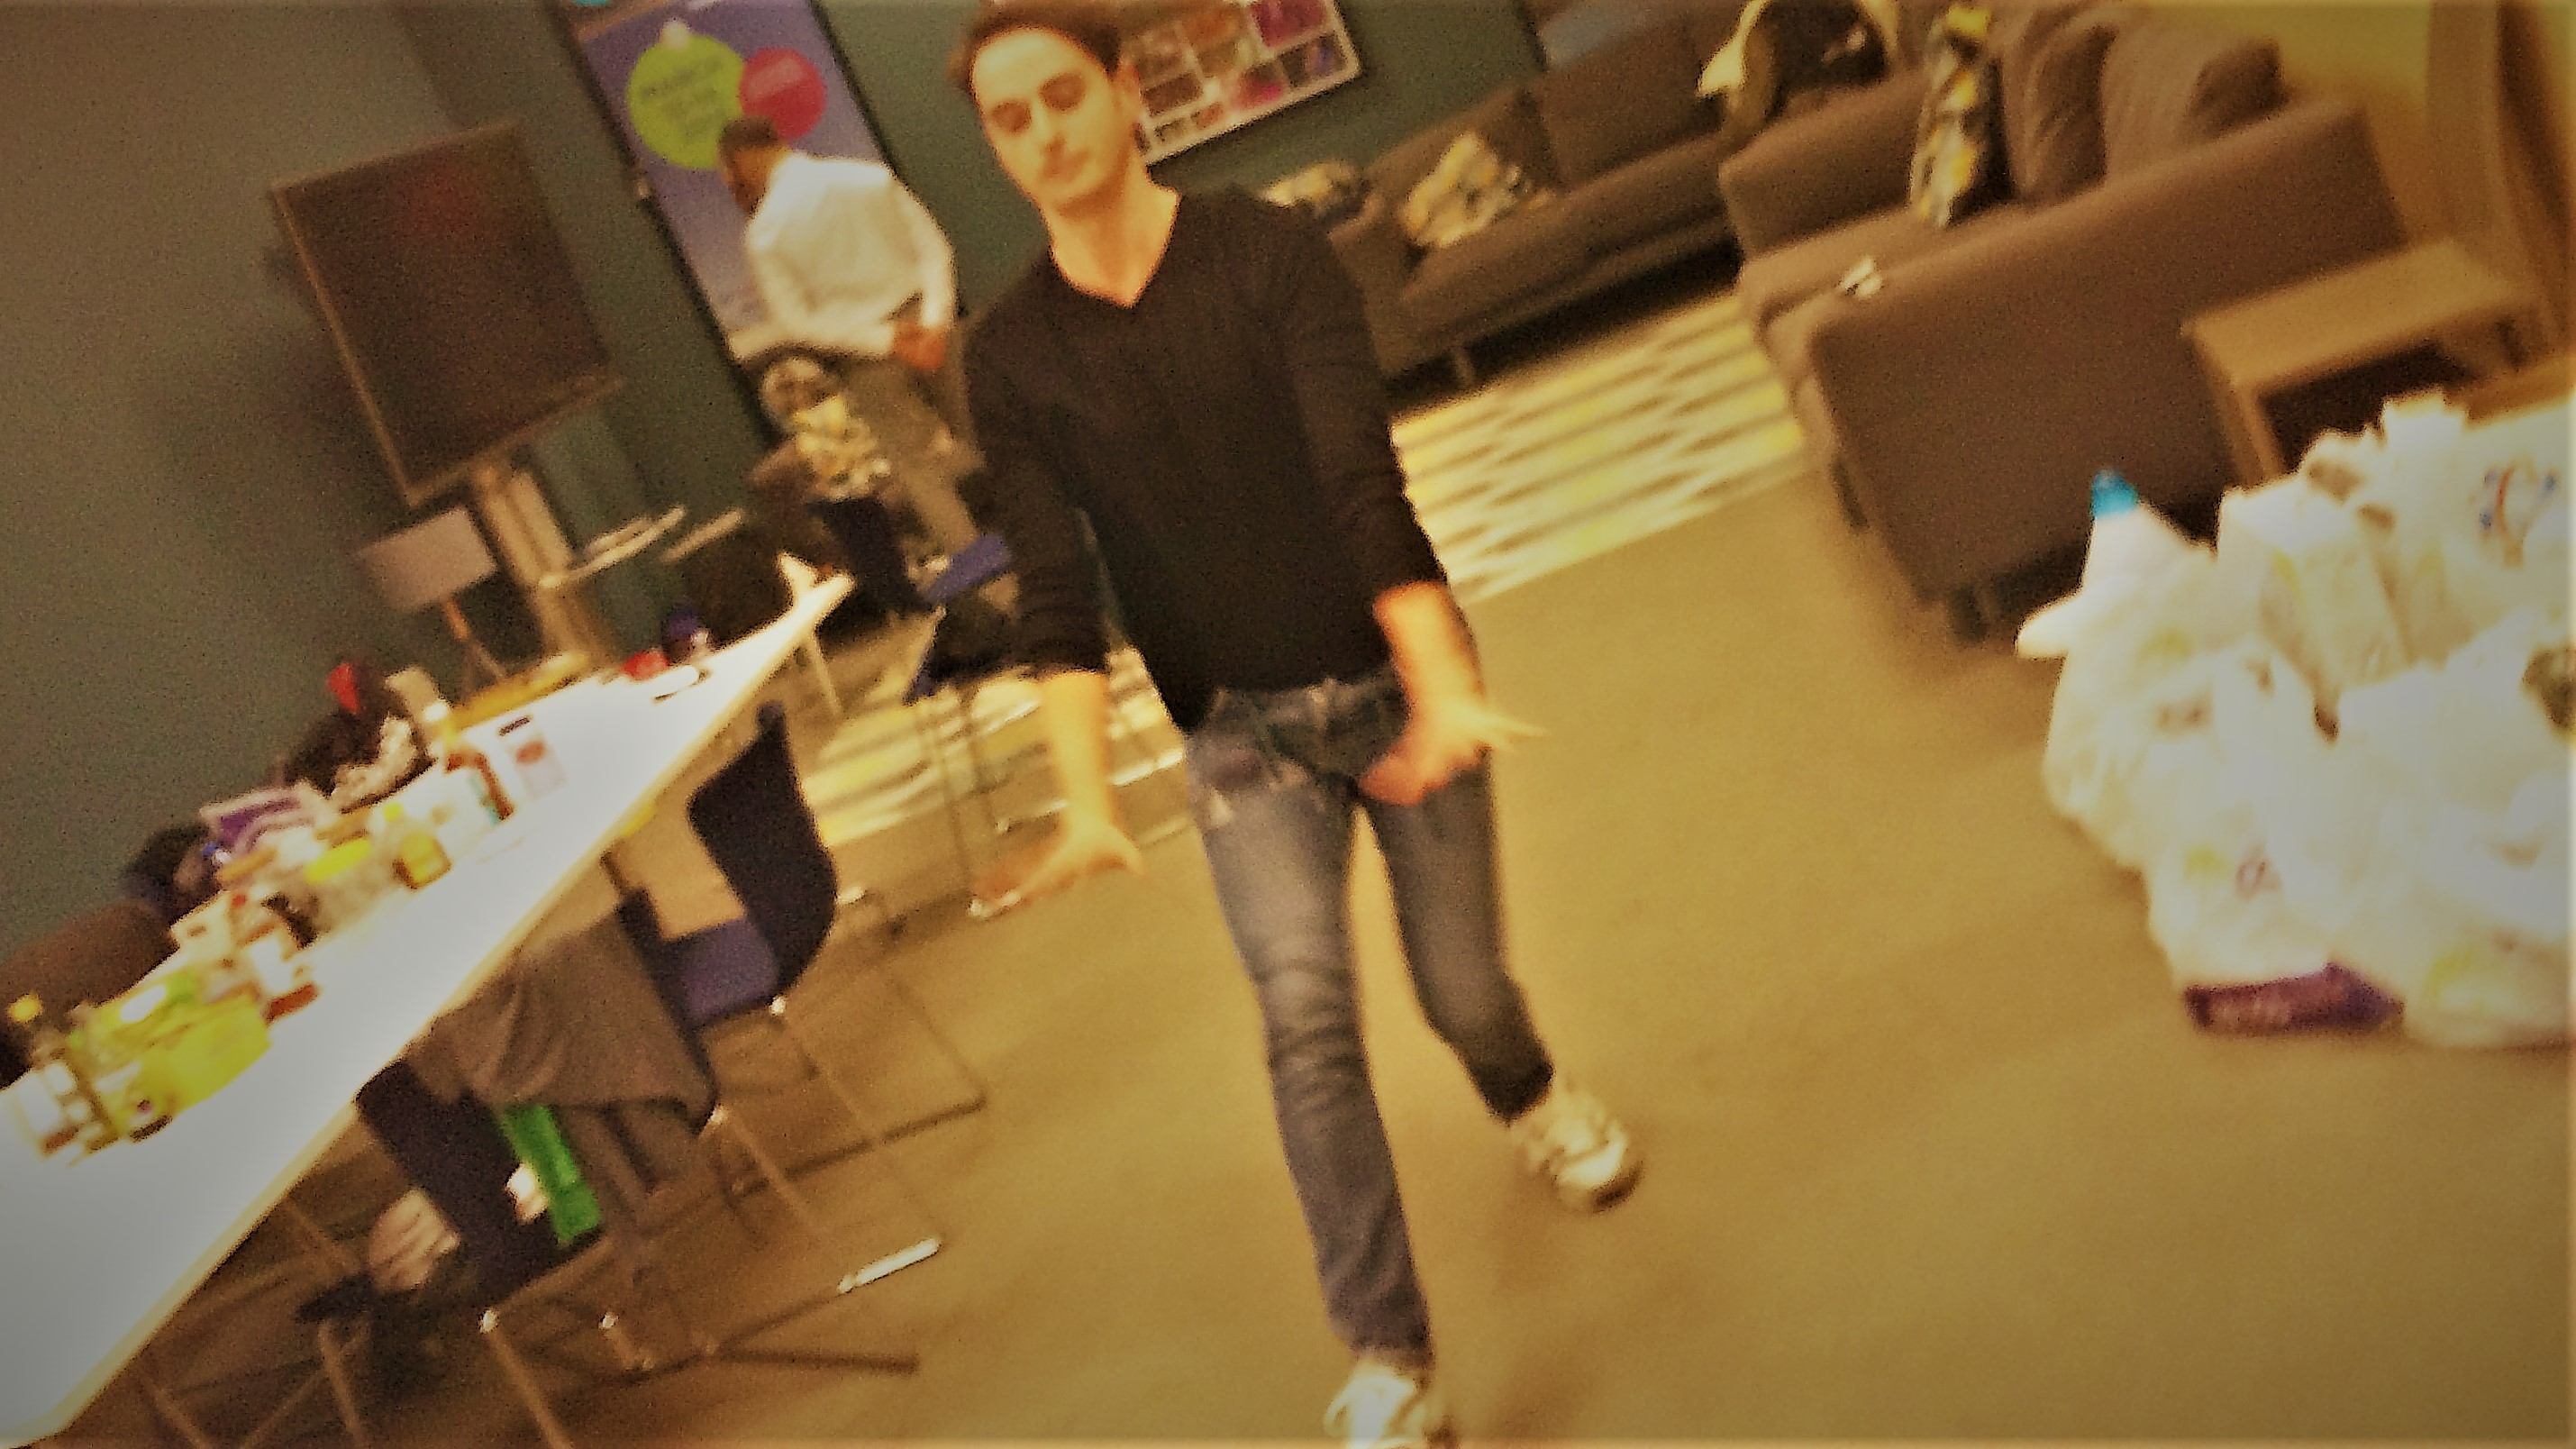 Taner showing us some moves after the interview